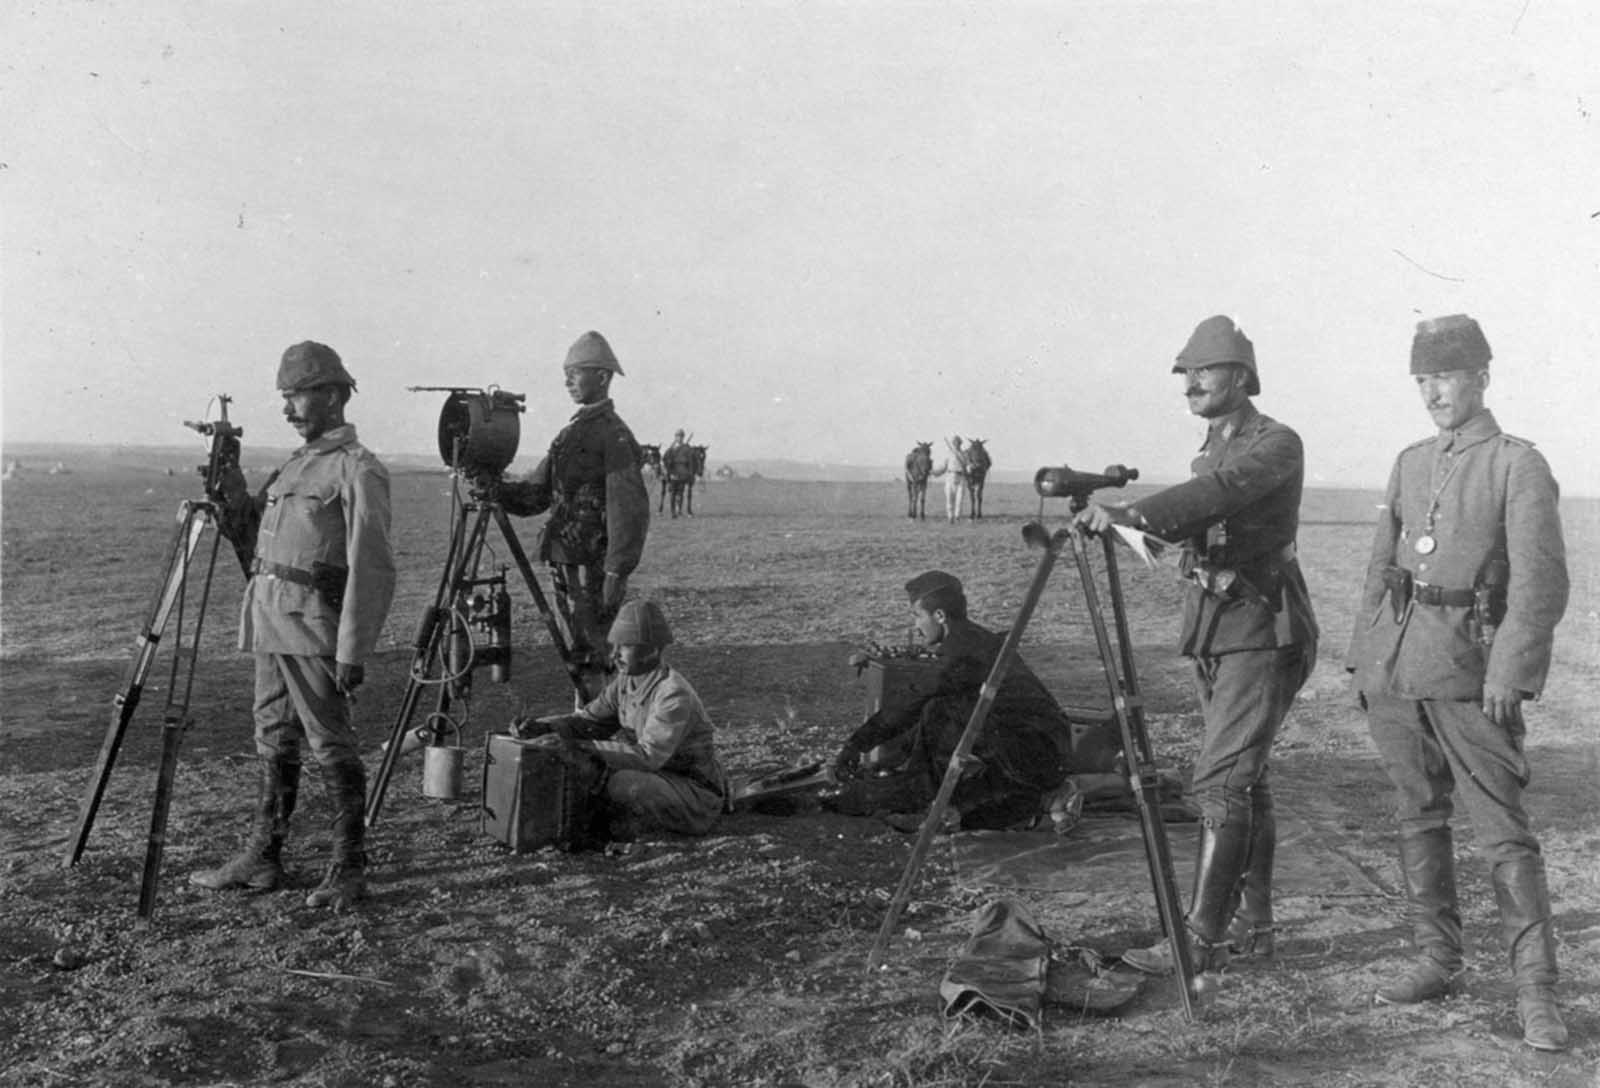 Turkish troops use a heliograph at Huj, near aza City, in 1917. A heliograph is a wireless solar telegraph that signals by flashes of sunlight usually using Morse code, reflected by a mirror.